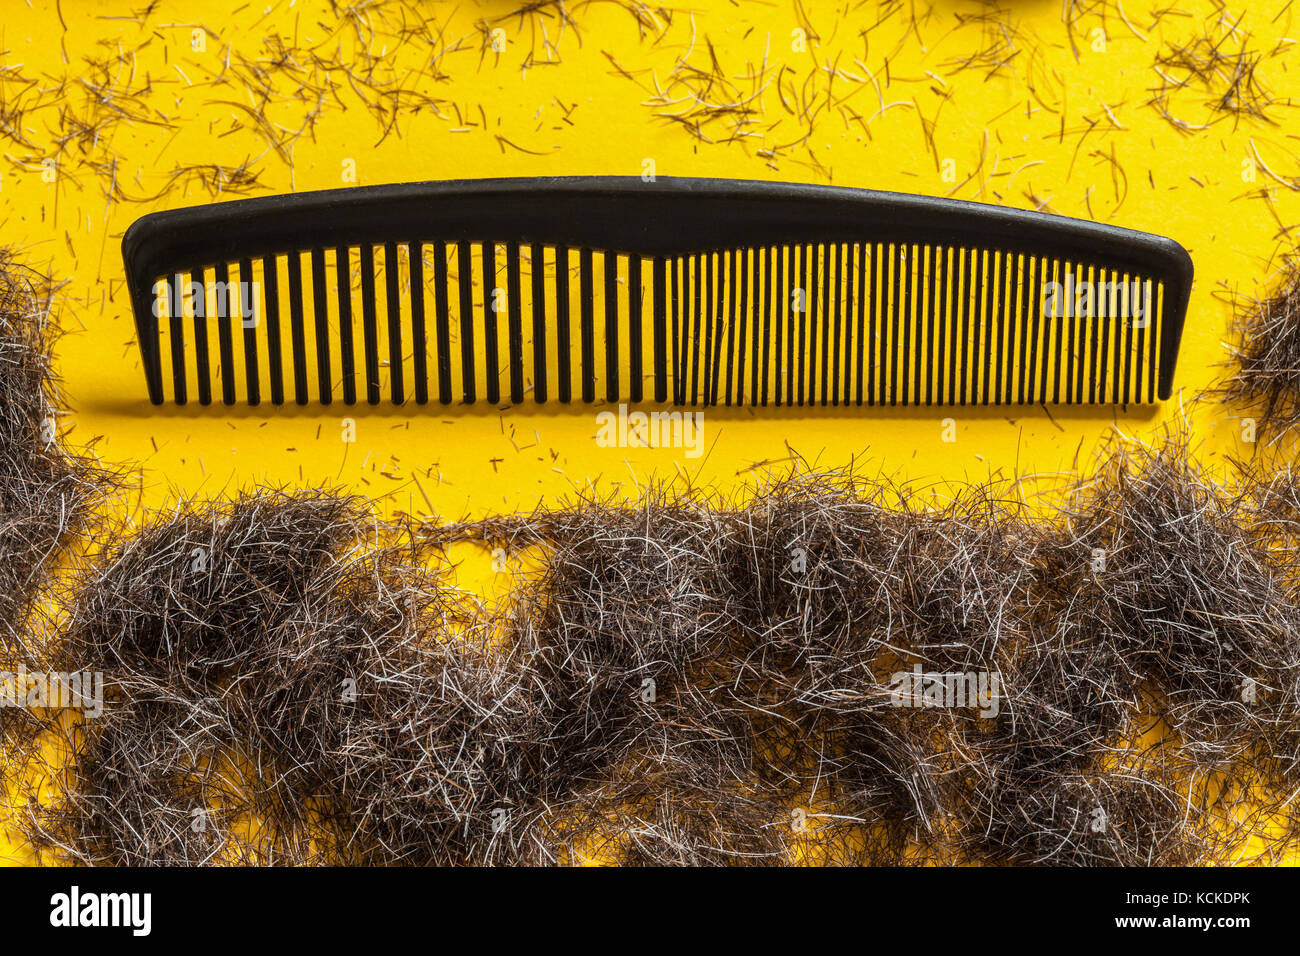 Comb and beard trimmings on a bright yellow background. Concept for male grooming and style concious men for movember - Stock Image